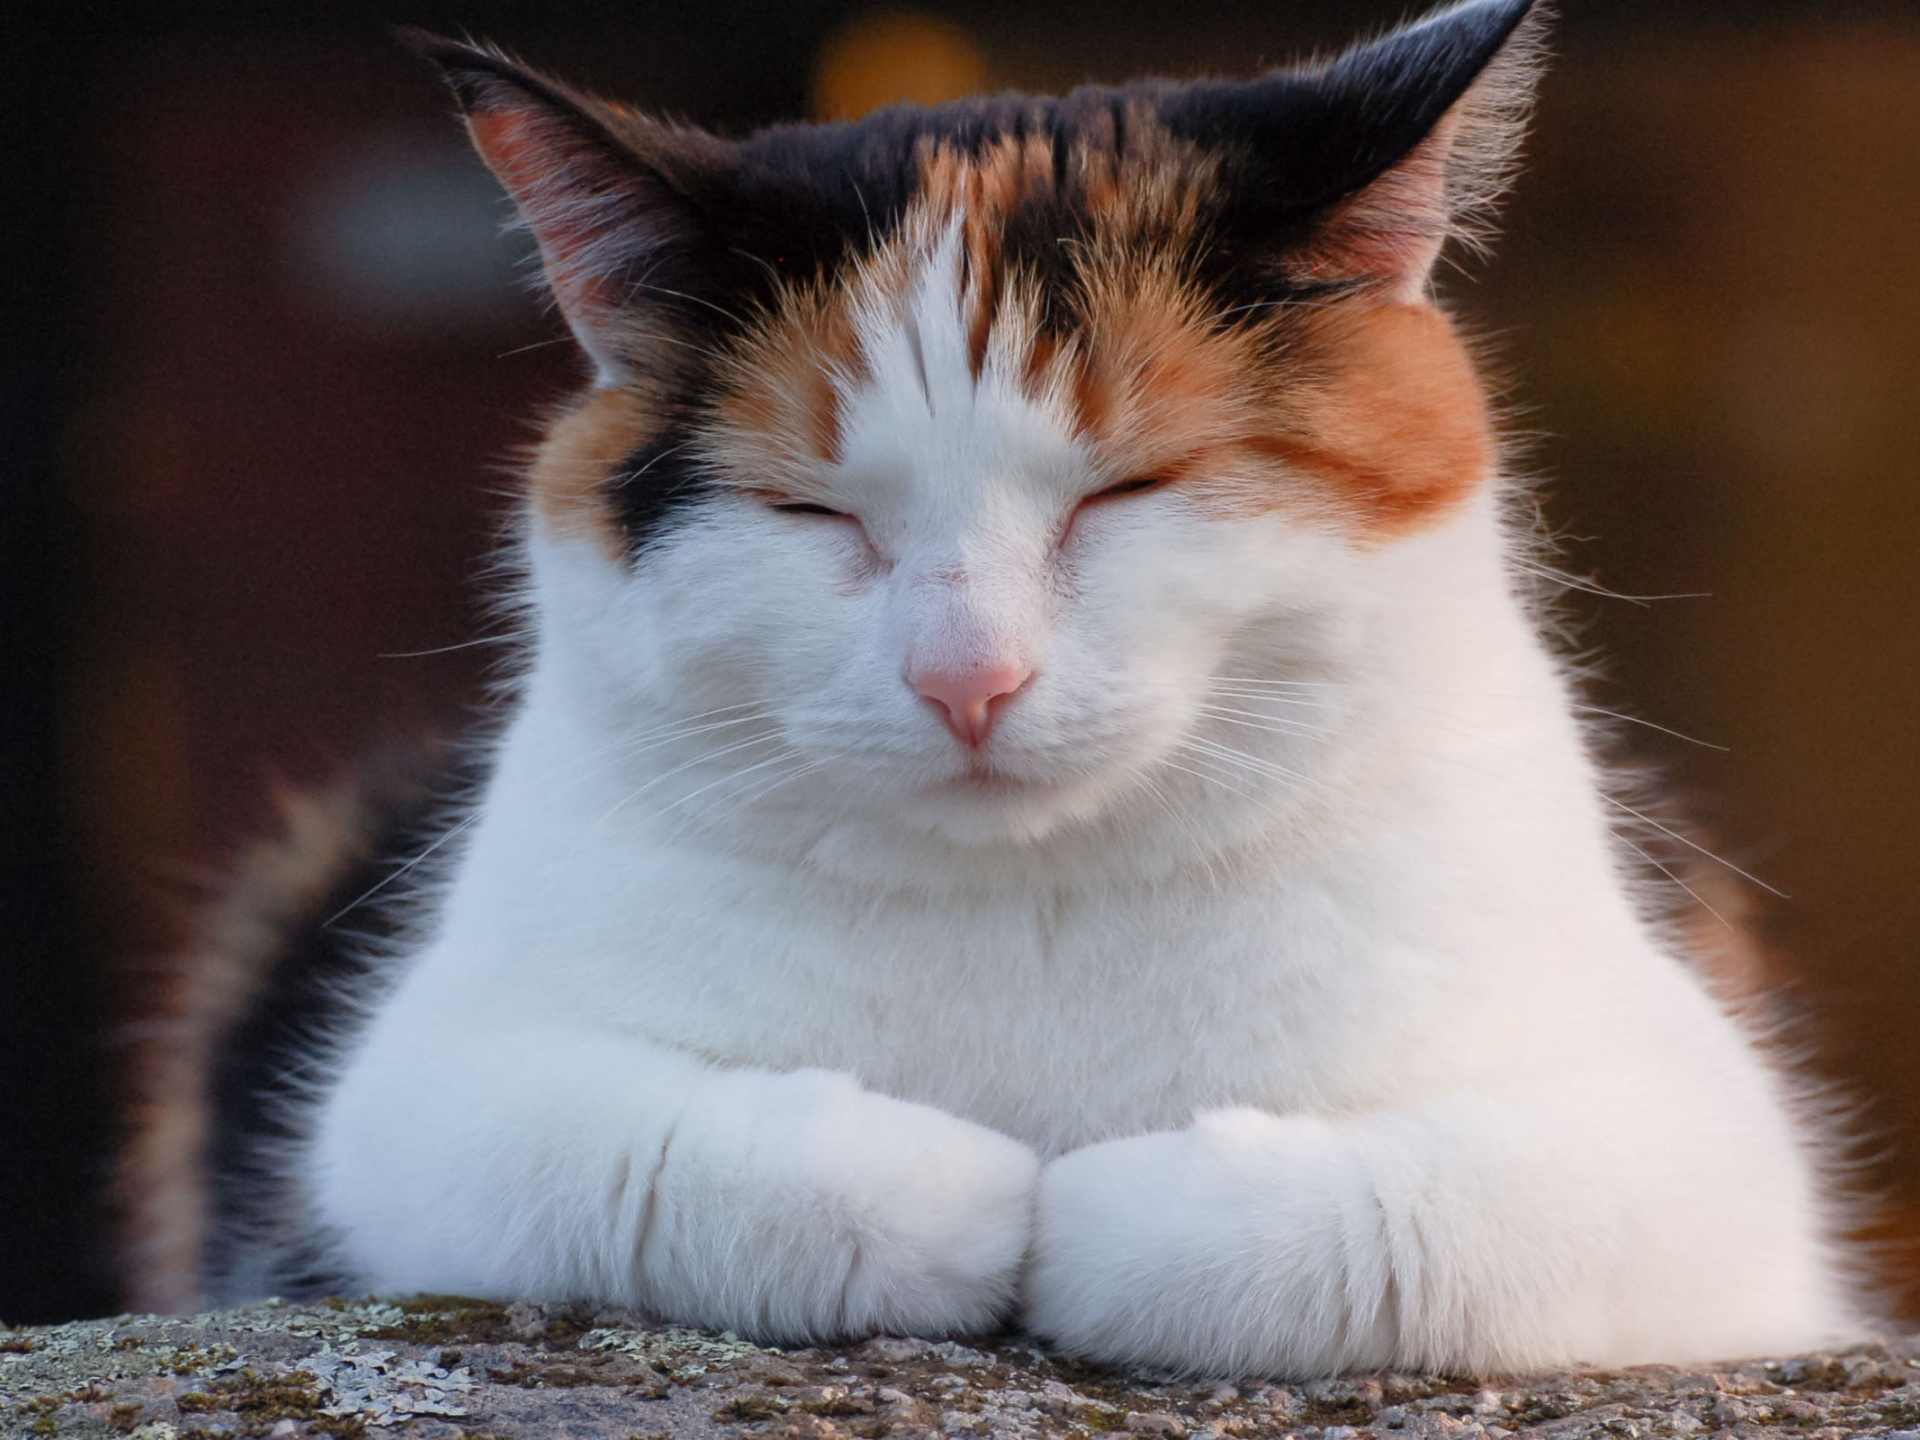 click to free download the wallpaper--Cute Animal Pics, a Lazy and Chubby Kitty, About to Fall into Sound Sleep 1920X1440 free wallpaper download